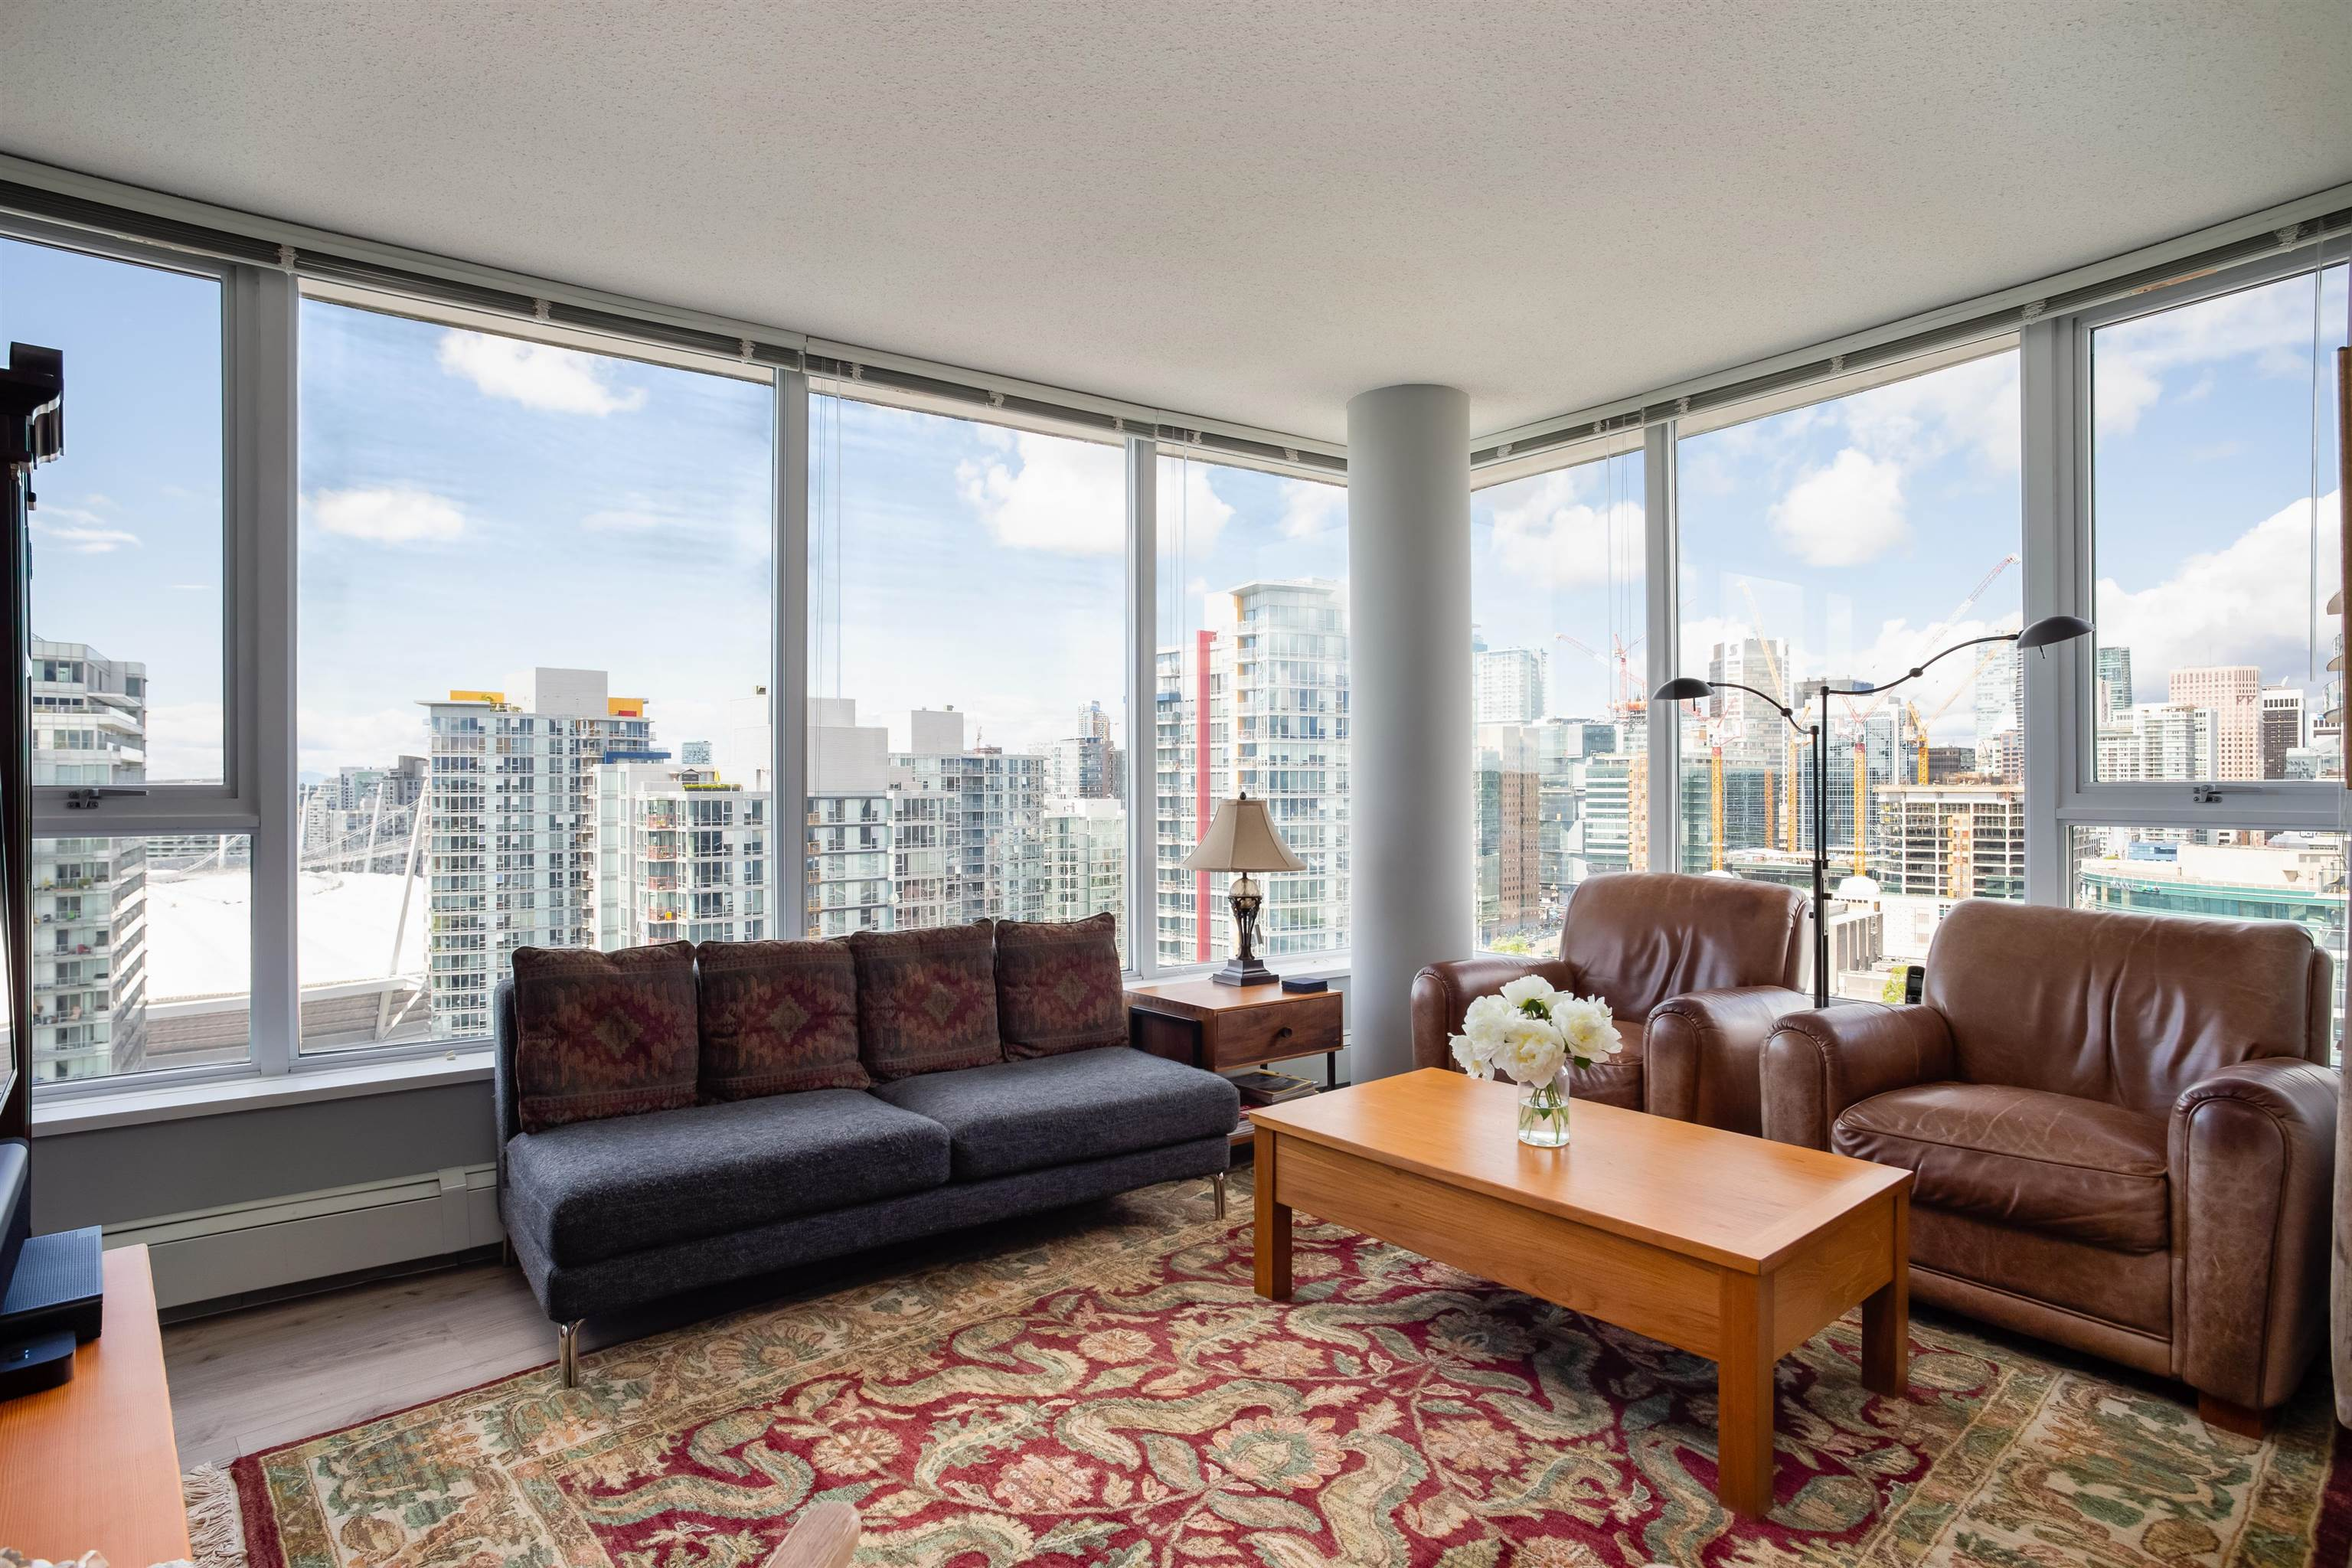 3505 689 ABBOTT STREET - Downtown VW Apartment/Condo for sale, 2 Bedrooms (R2621106) - #1